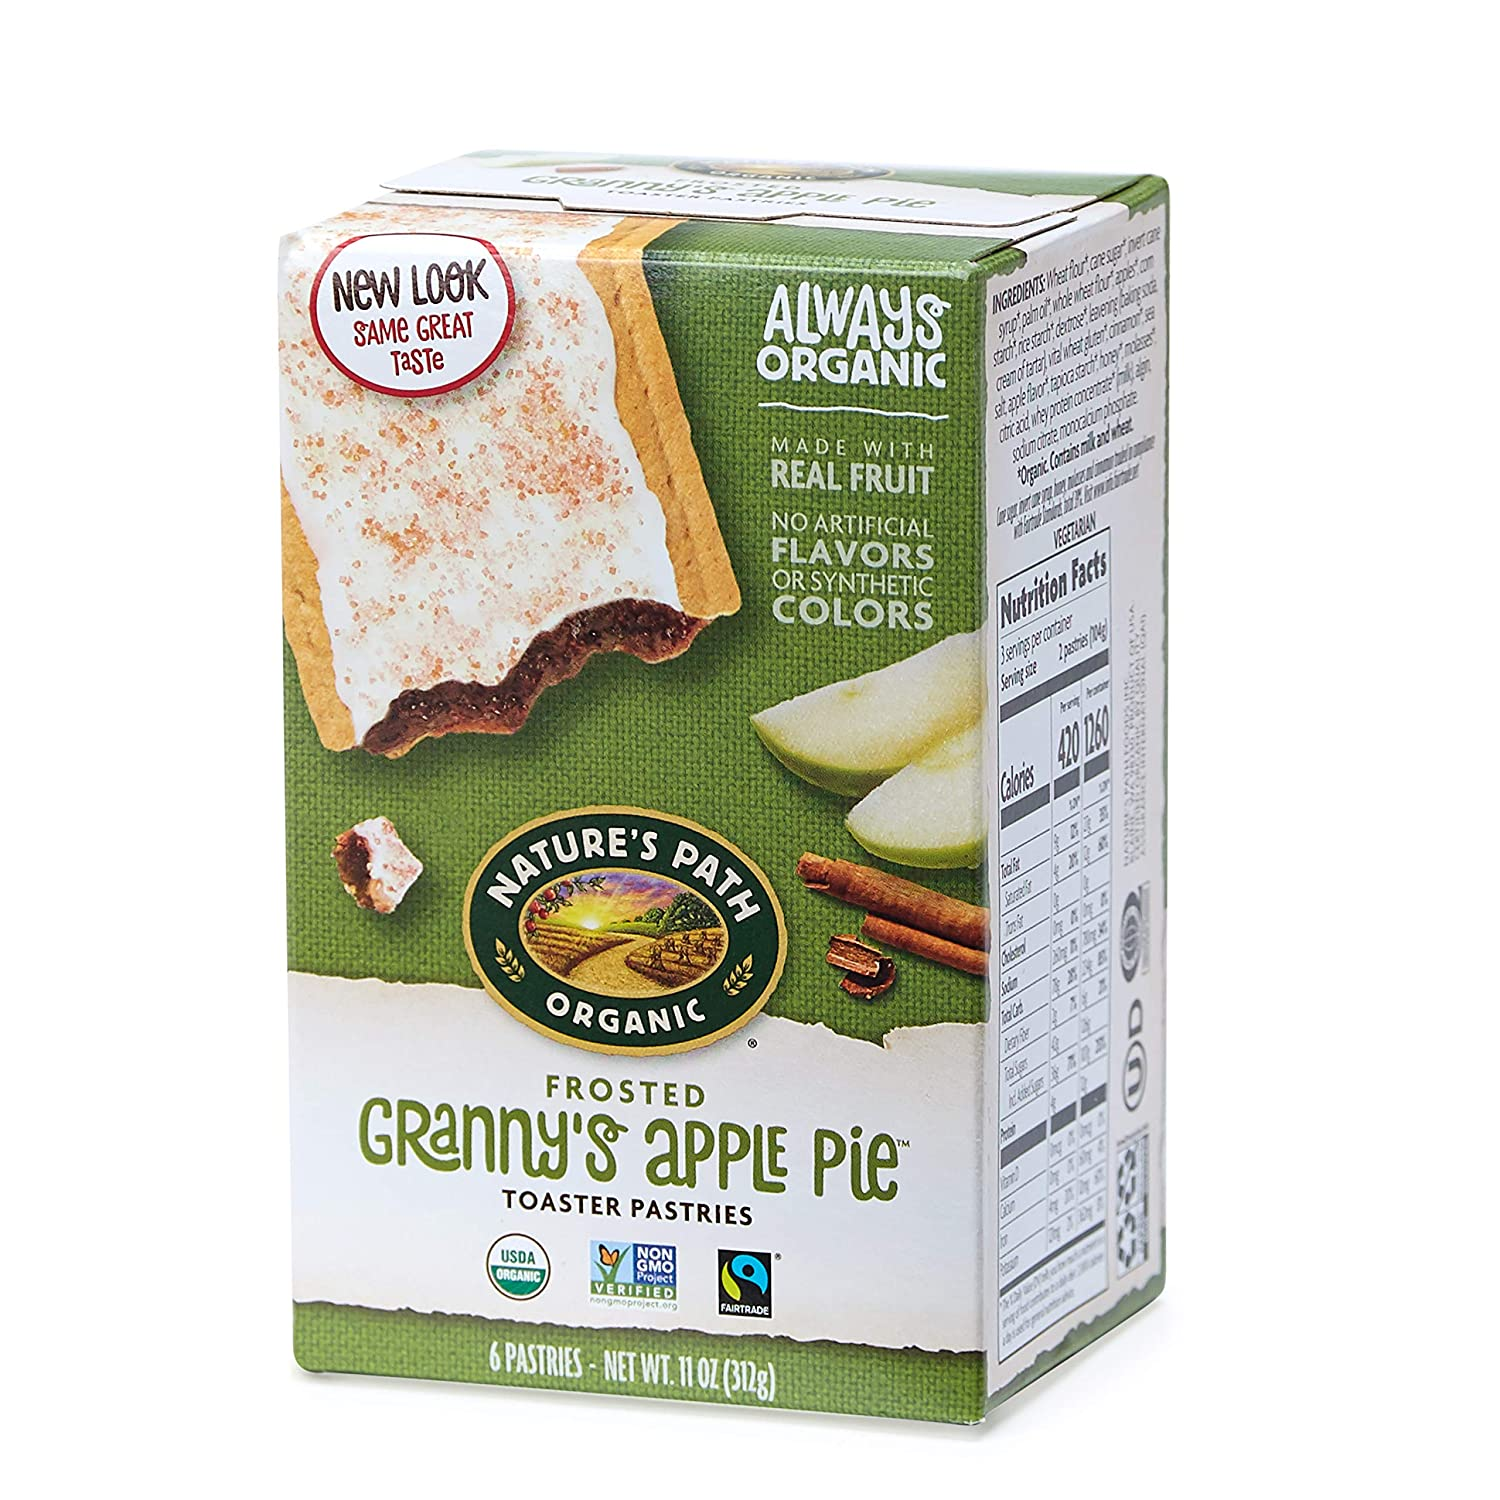 Nature's Path Frosted Granny's Apple Pie Toaster Pastries, Healthy, Organic, 11-Ounce Box (Pack of 12)